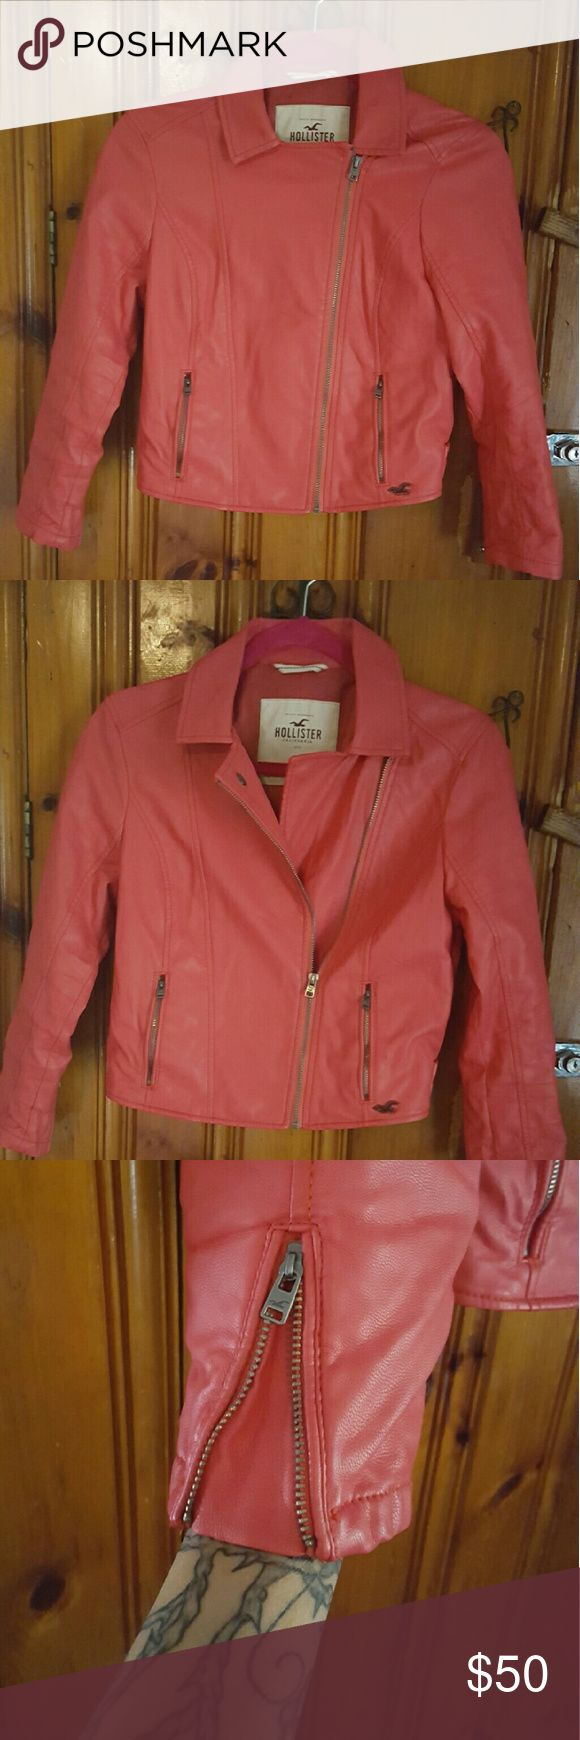 Hollister jacket Like new hollister jacket  beautiful coral color. Size M but fits like a small size. Hollister Jackets & Coats